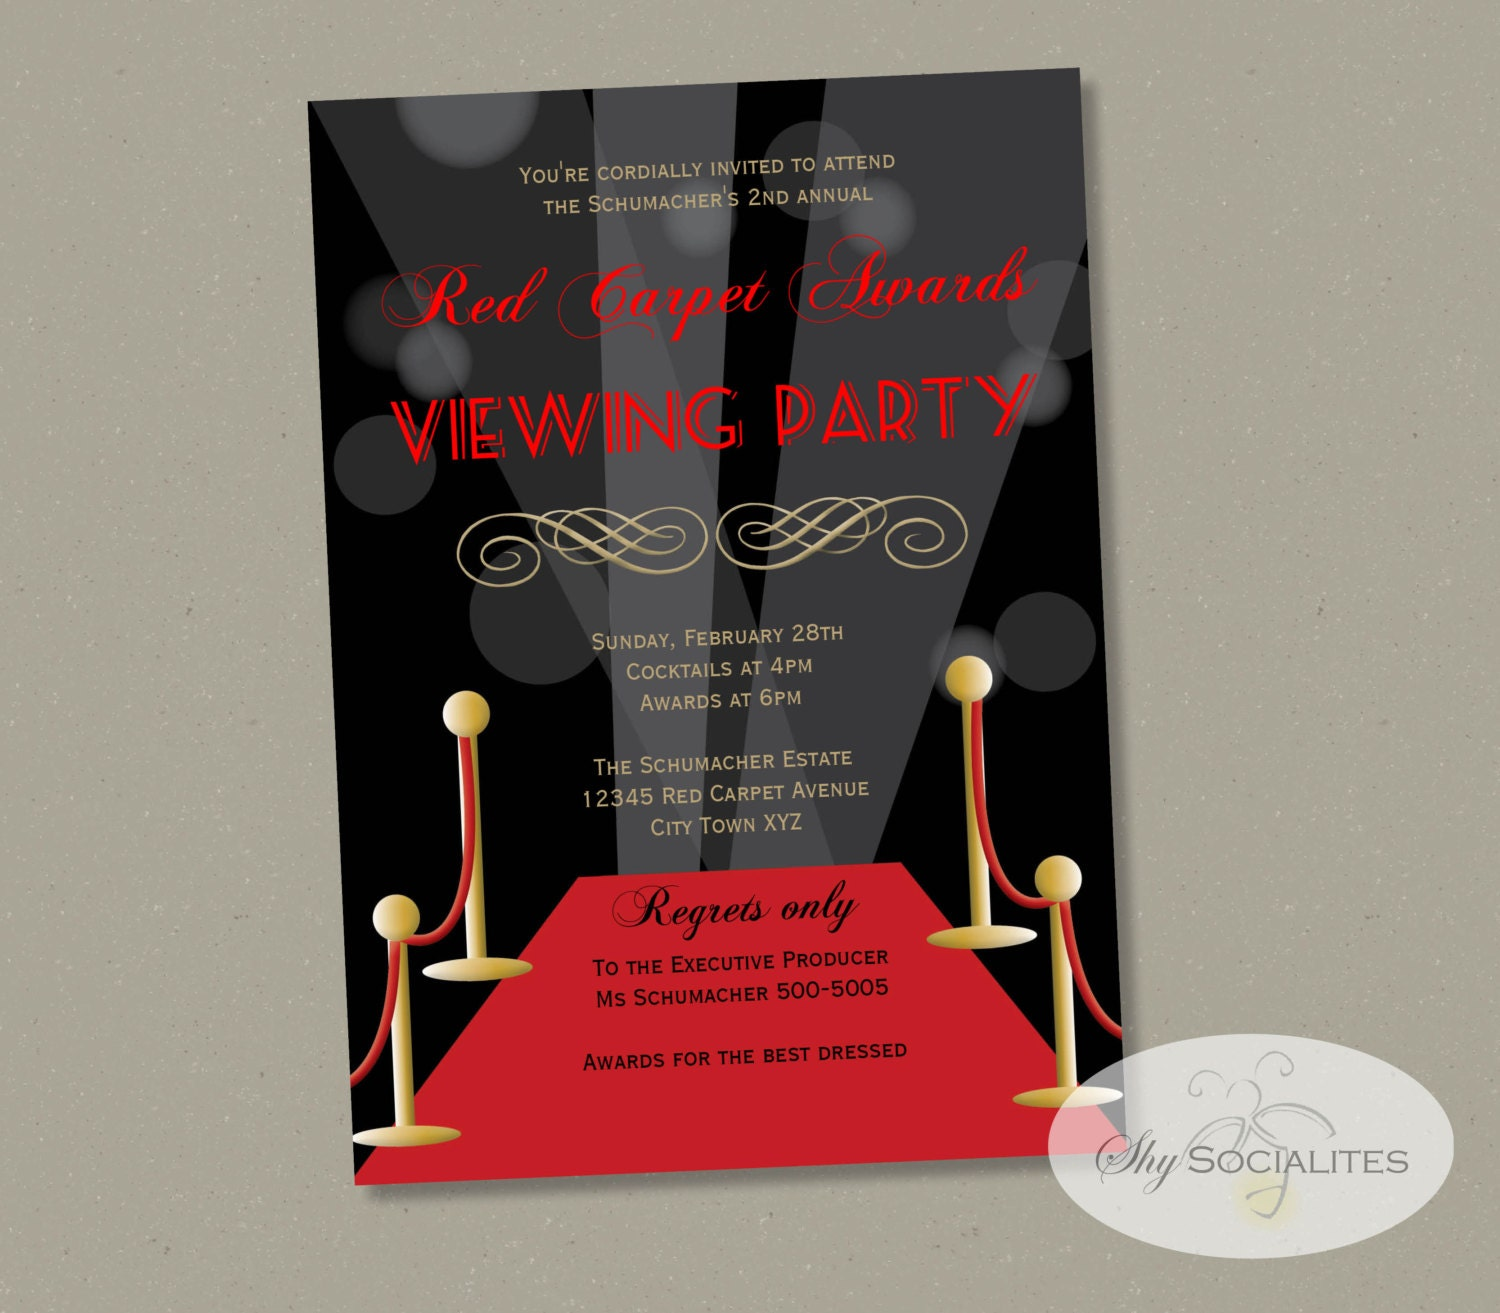 Red Carpet Awards Viewing Invitation Red Carpet Party